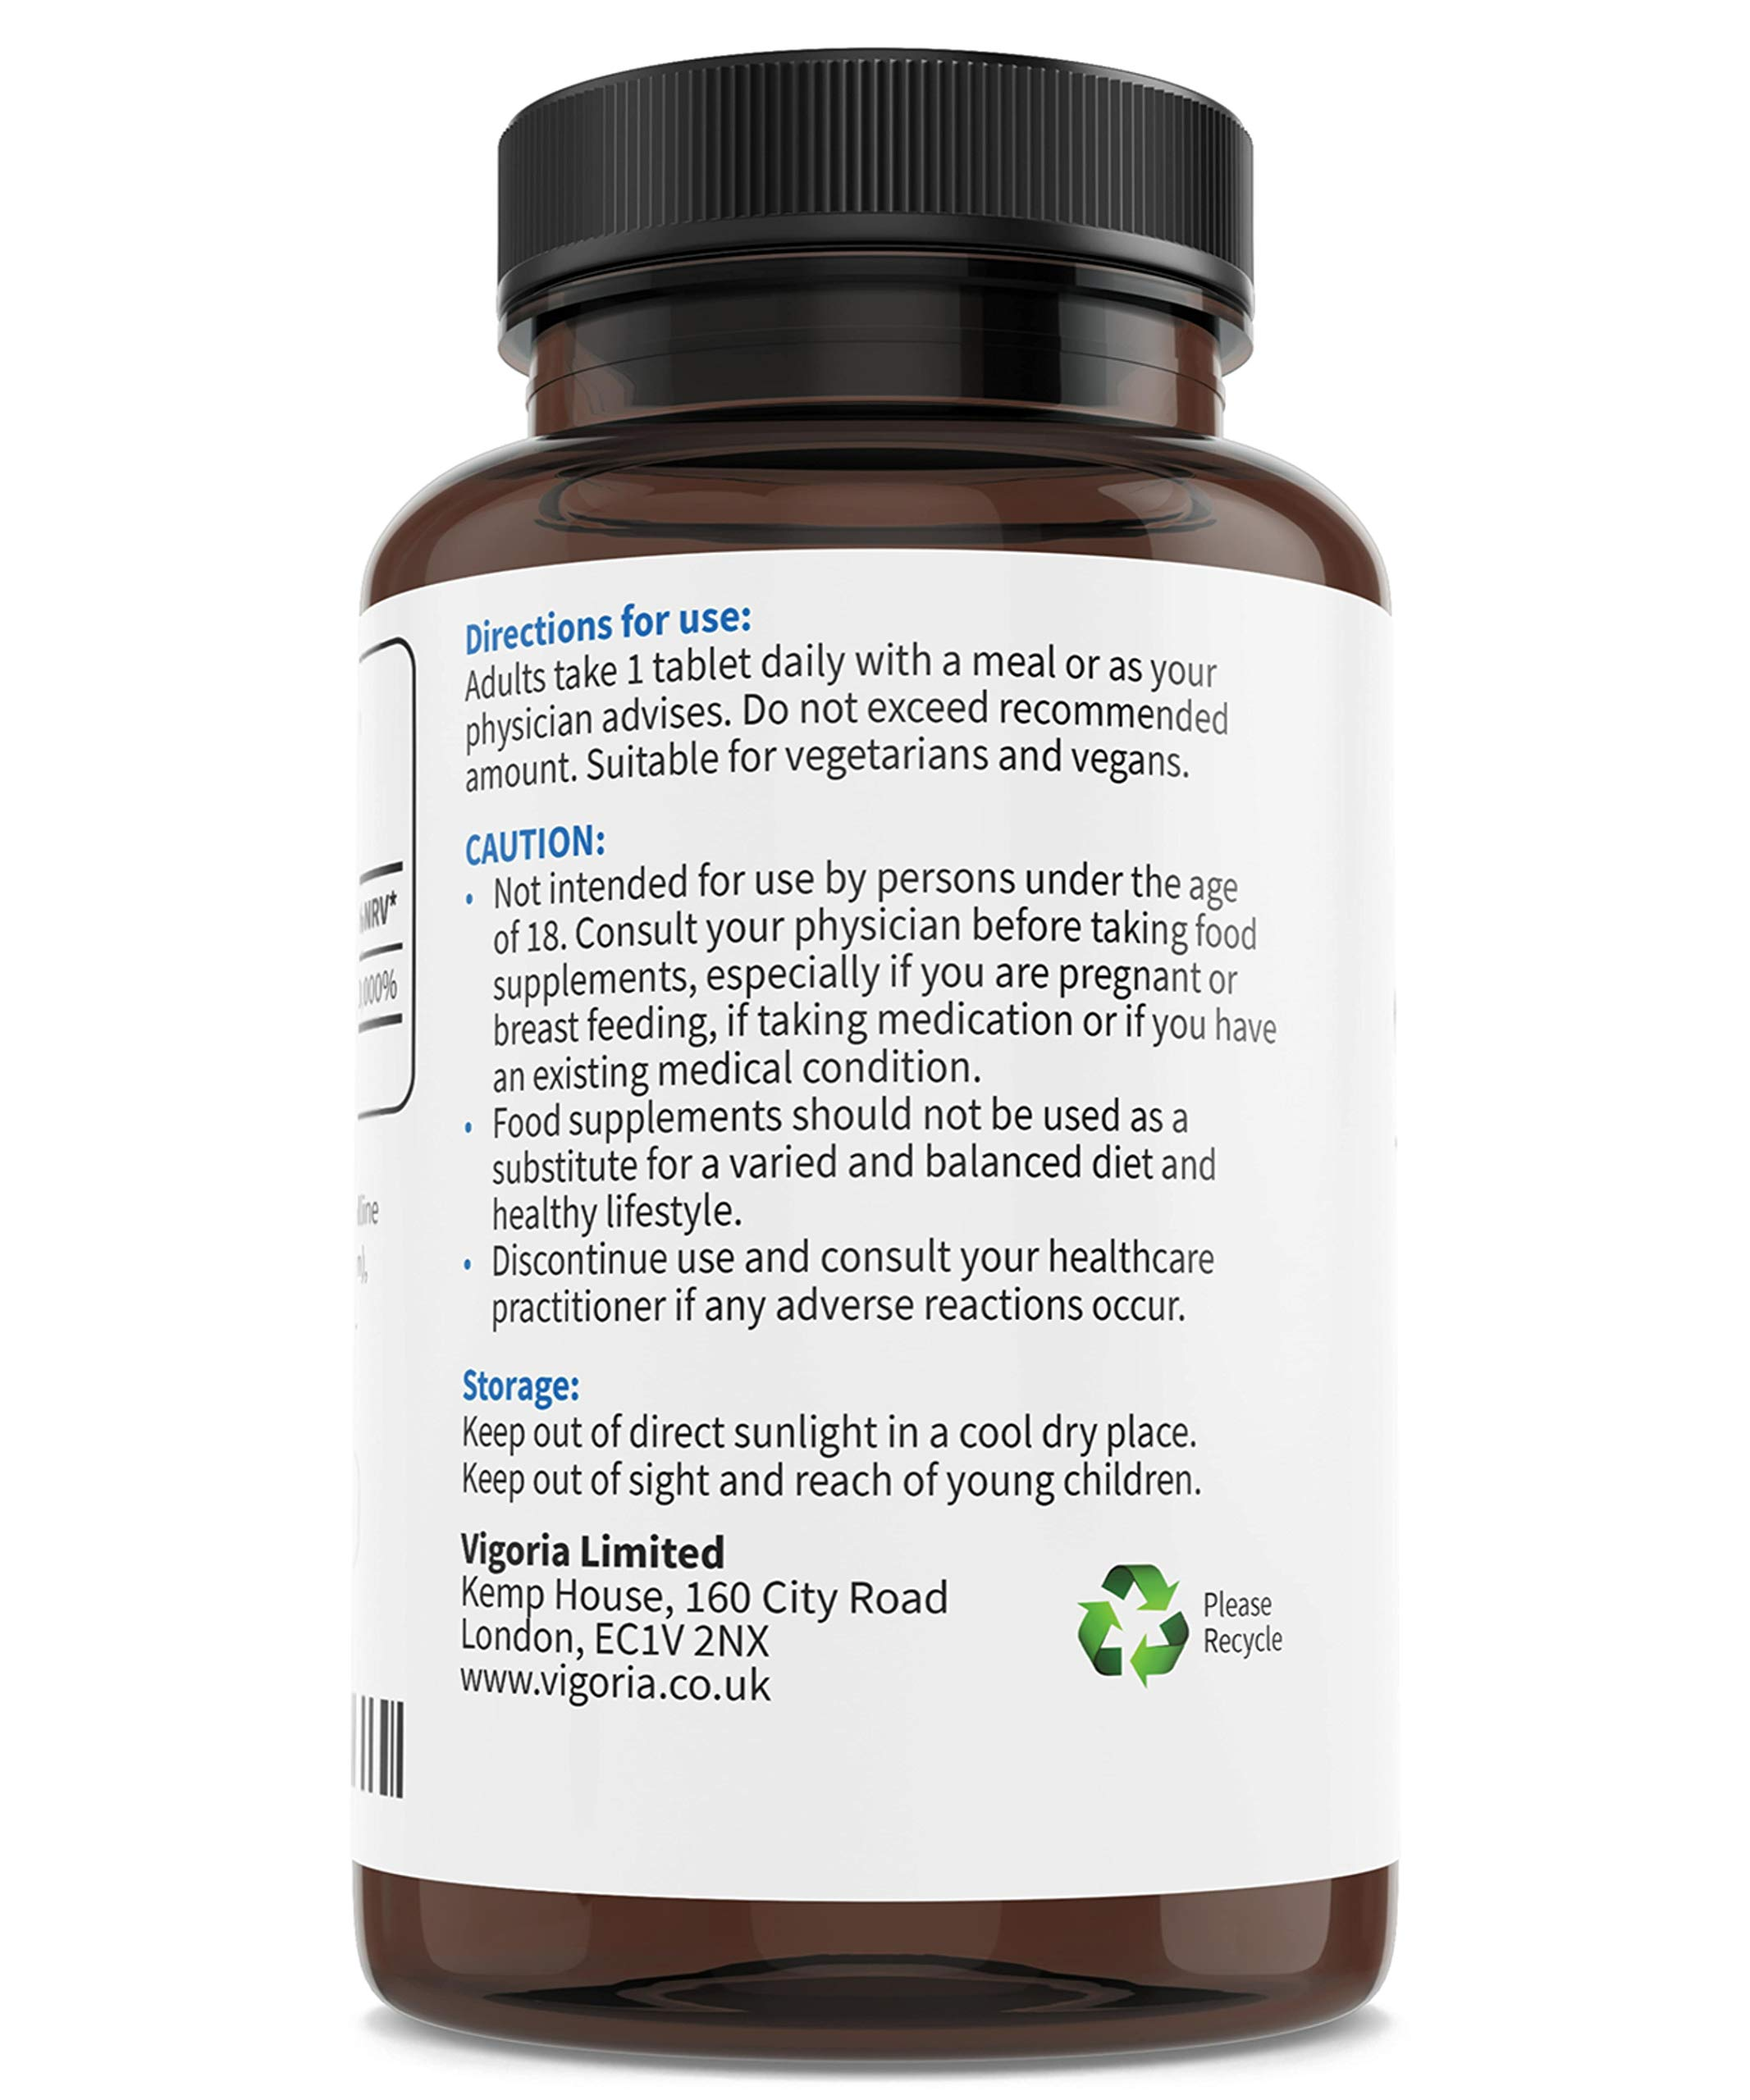 Vitamin B12 for a Healthy Nervous and Immune System - Natural Energy, Tiredness and Fatigue Reduction - 1000 mcg - 120 Easy Absorption Tablets - Non-GMO - Gluten-Free - Vegan - UK Made